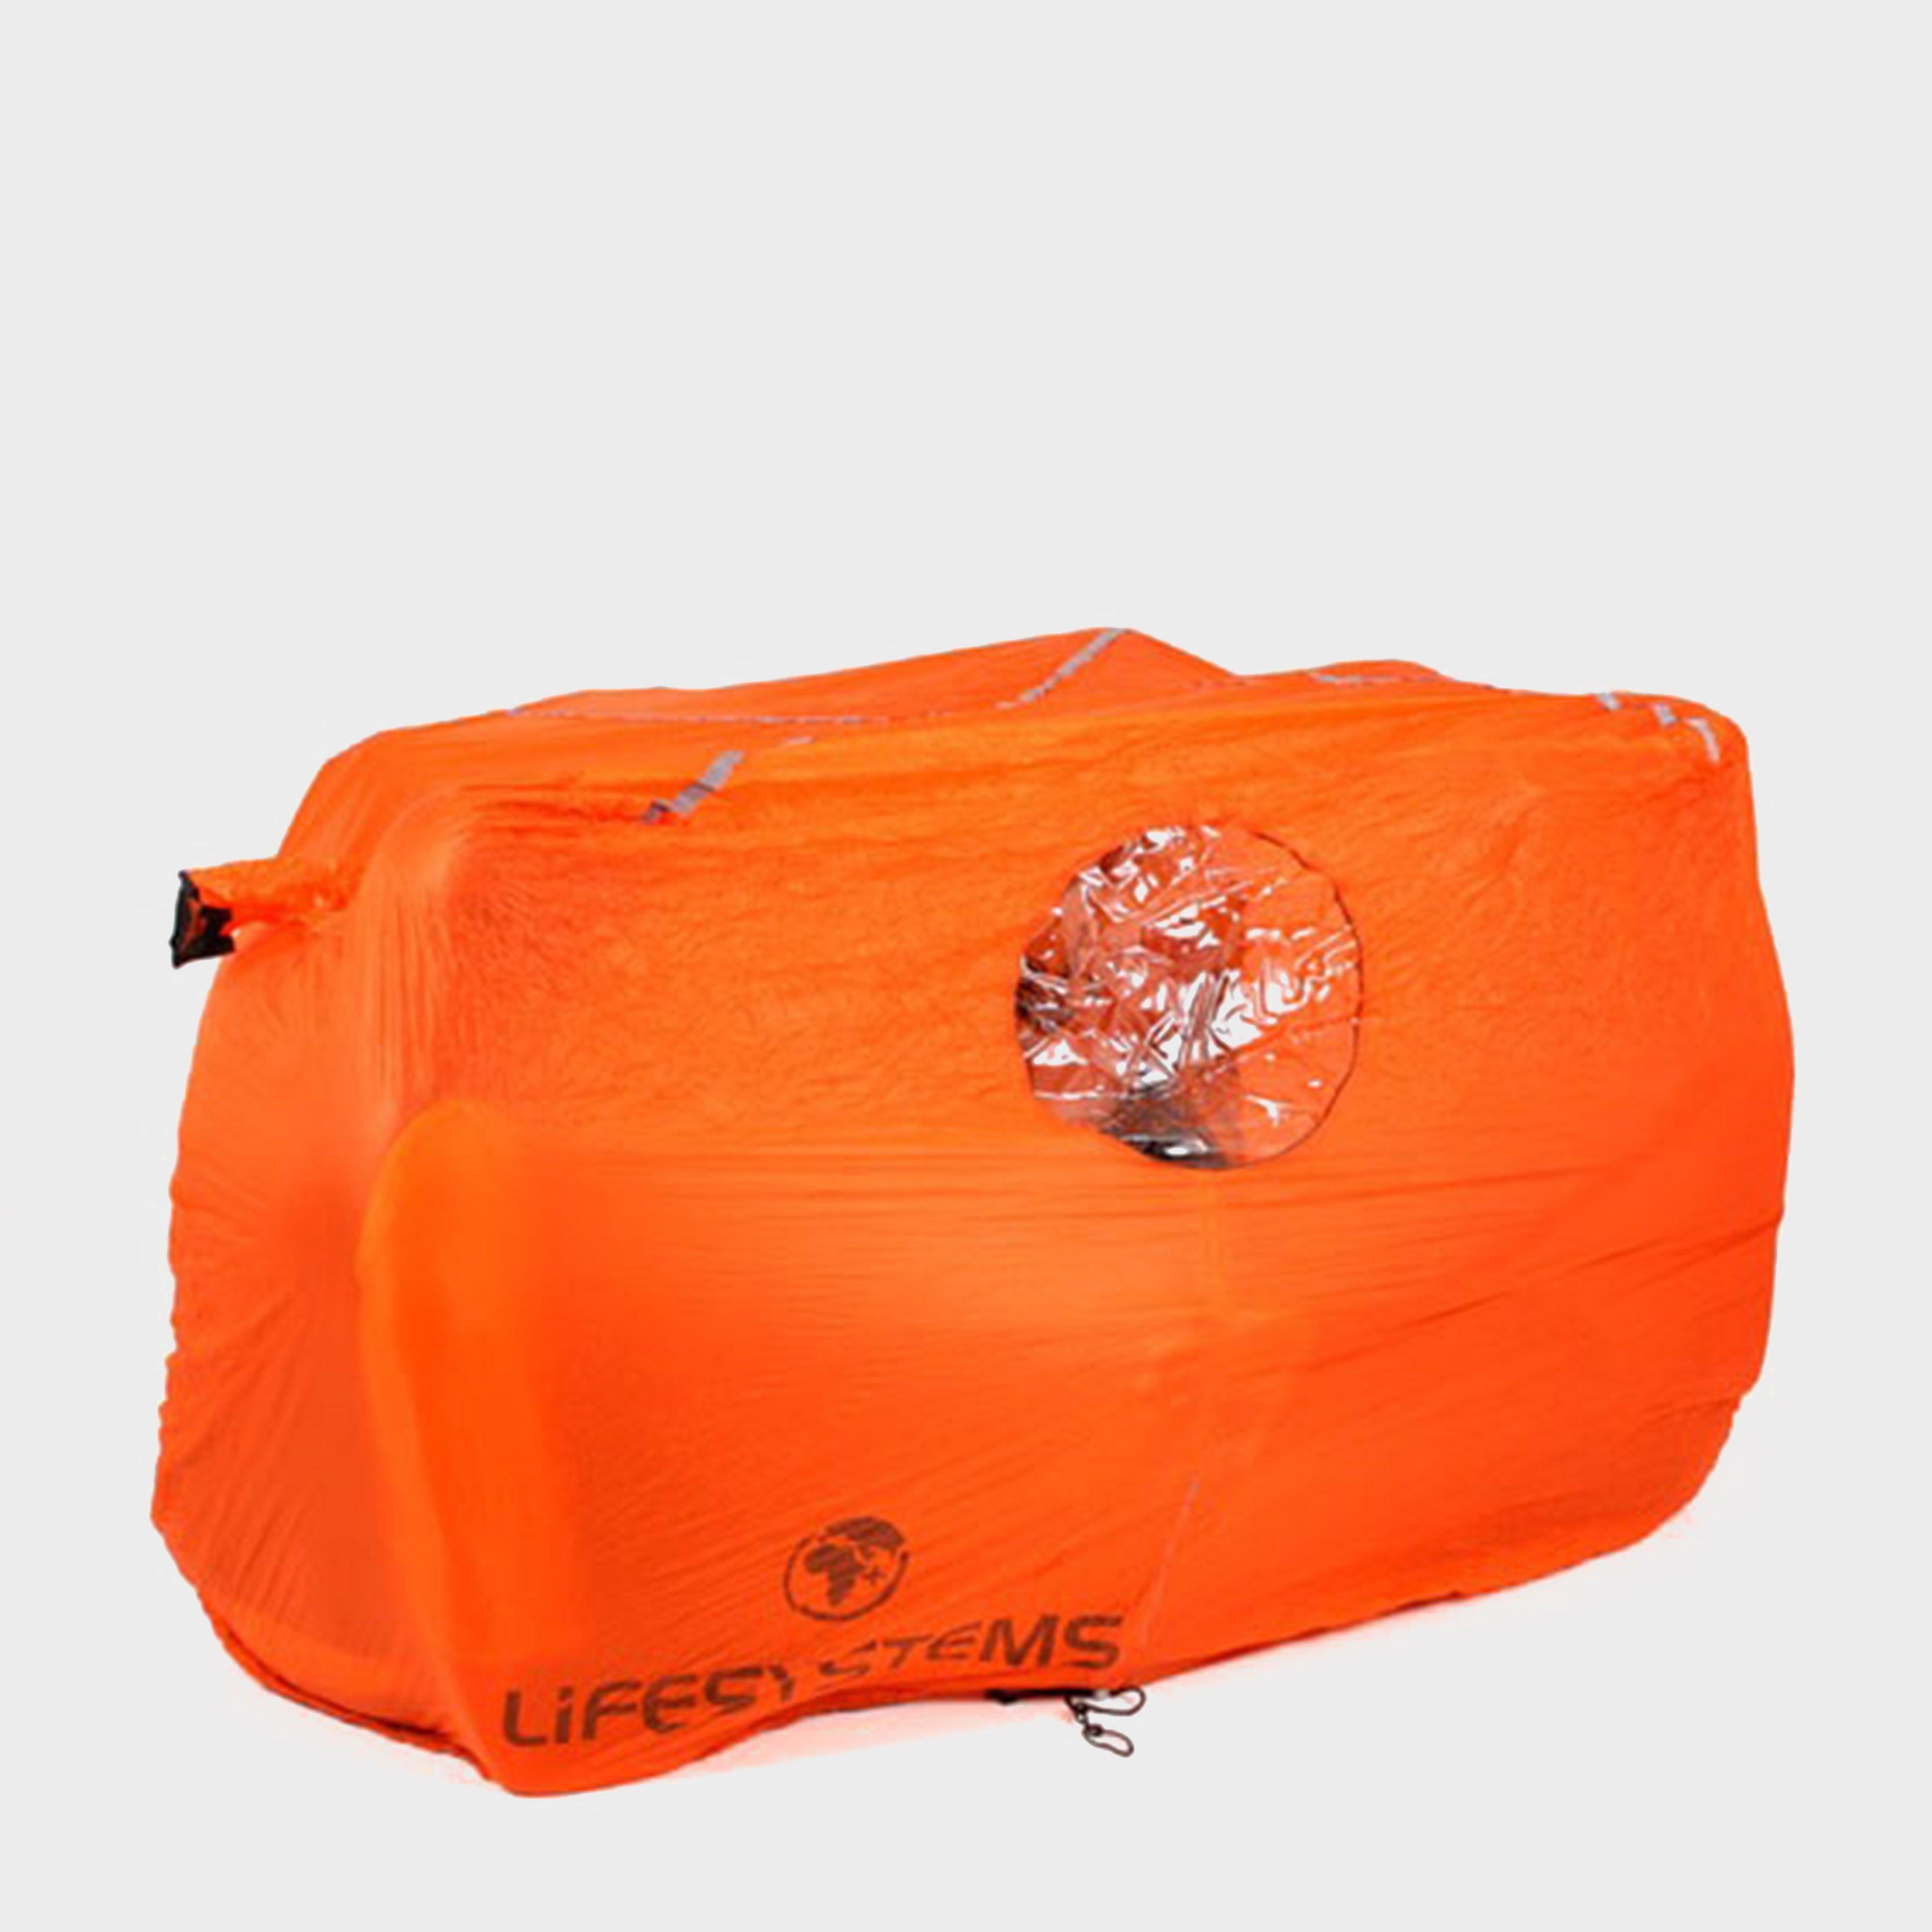 Image of Lifesystems 4 Person Survival Shelter - Orange/Orange, Orange/Orange